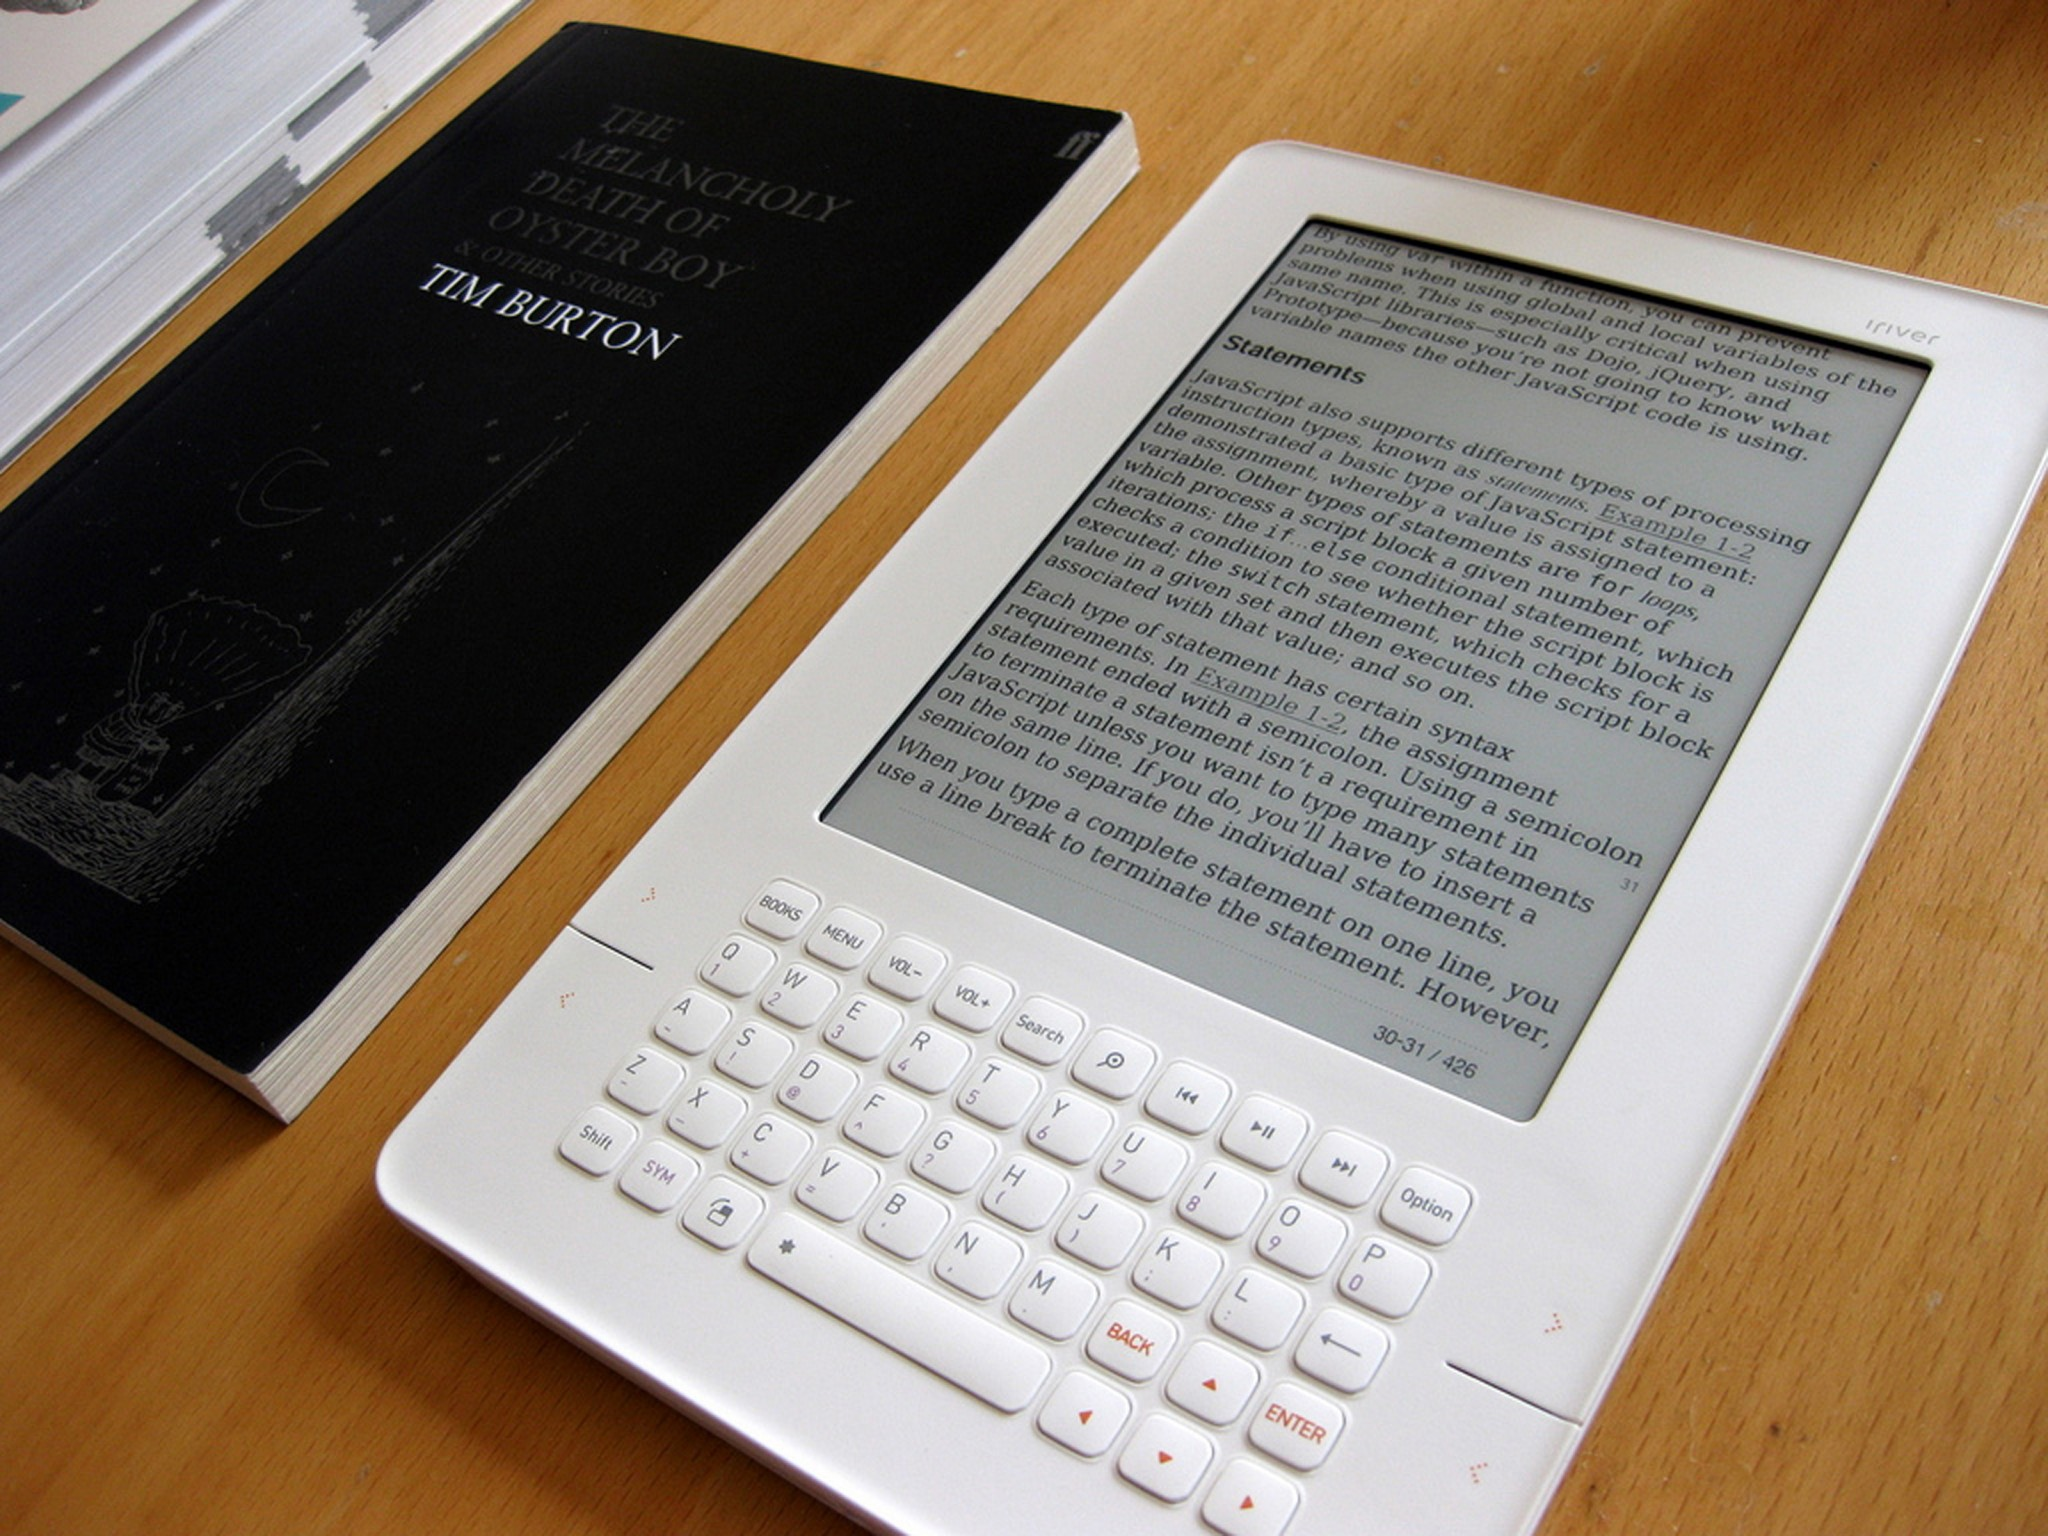 An iRiver E-book shows a textbook about JavaScript. - PHOTO BY ANDREW MASON.